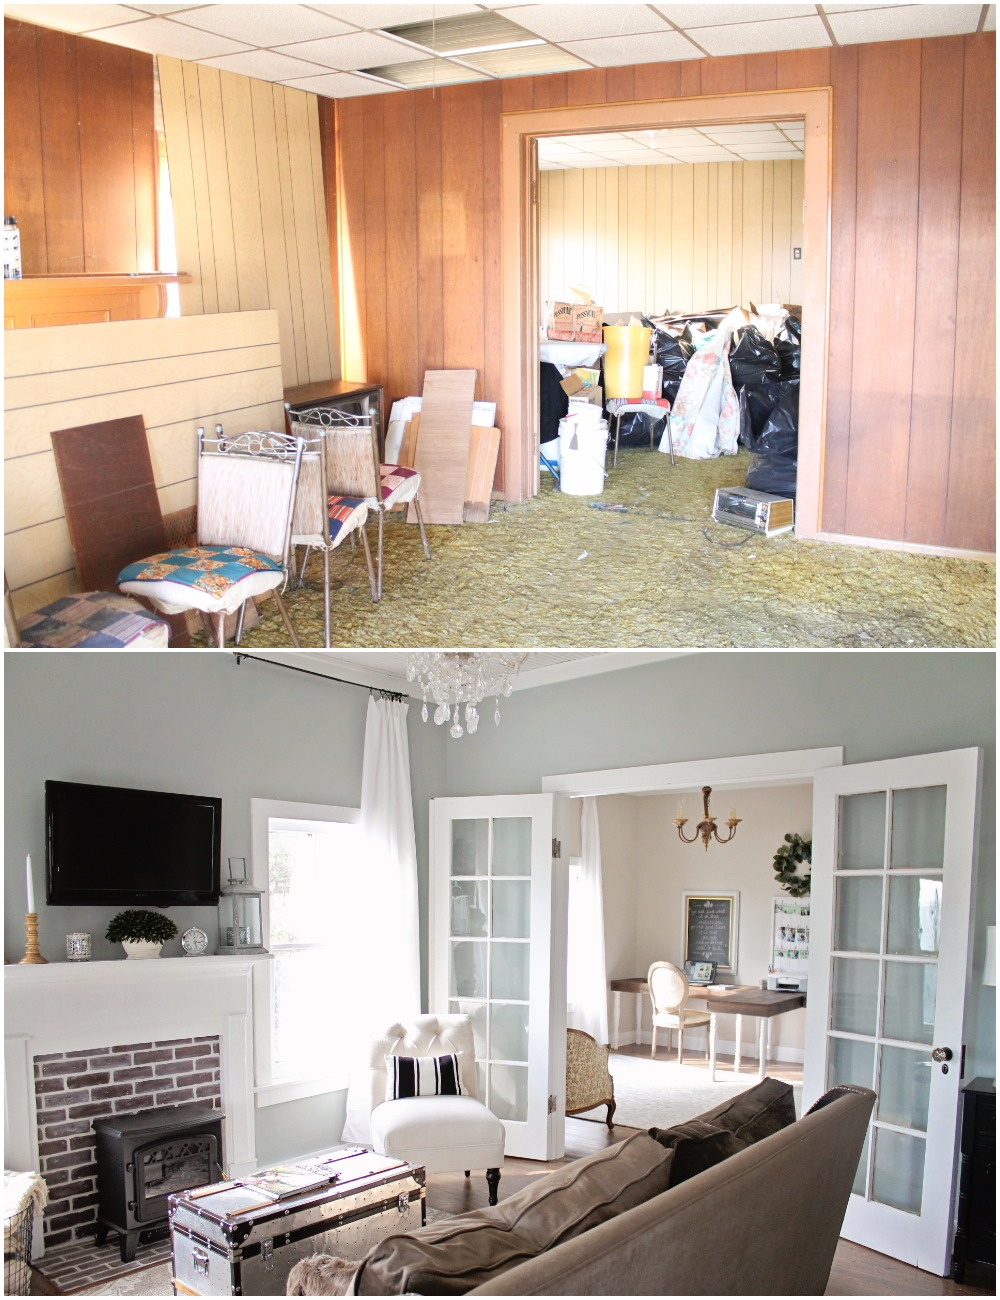 Elizabeth Burns Design  Budget-Friendly Fixer Upper Farmhouse Before and After House Flip - DIY Living Room with Faux Fireplace and French Doors - Sherwin Williams Magnetic Gray (1).jpg